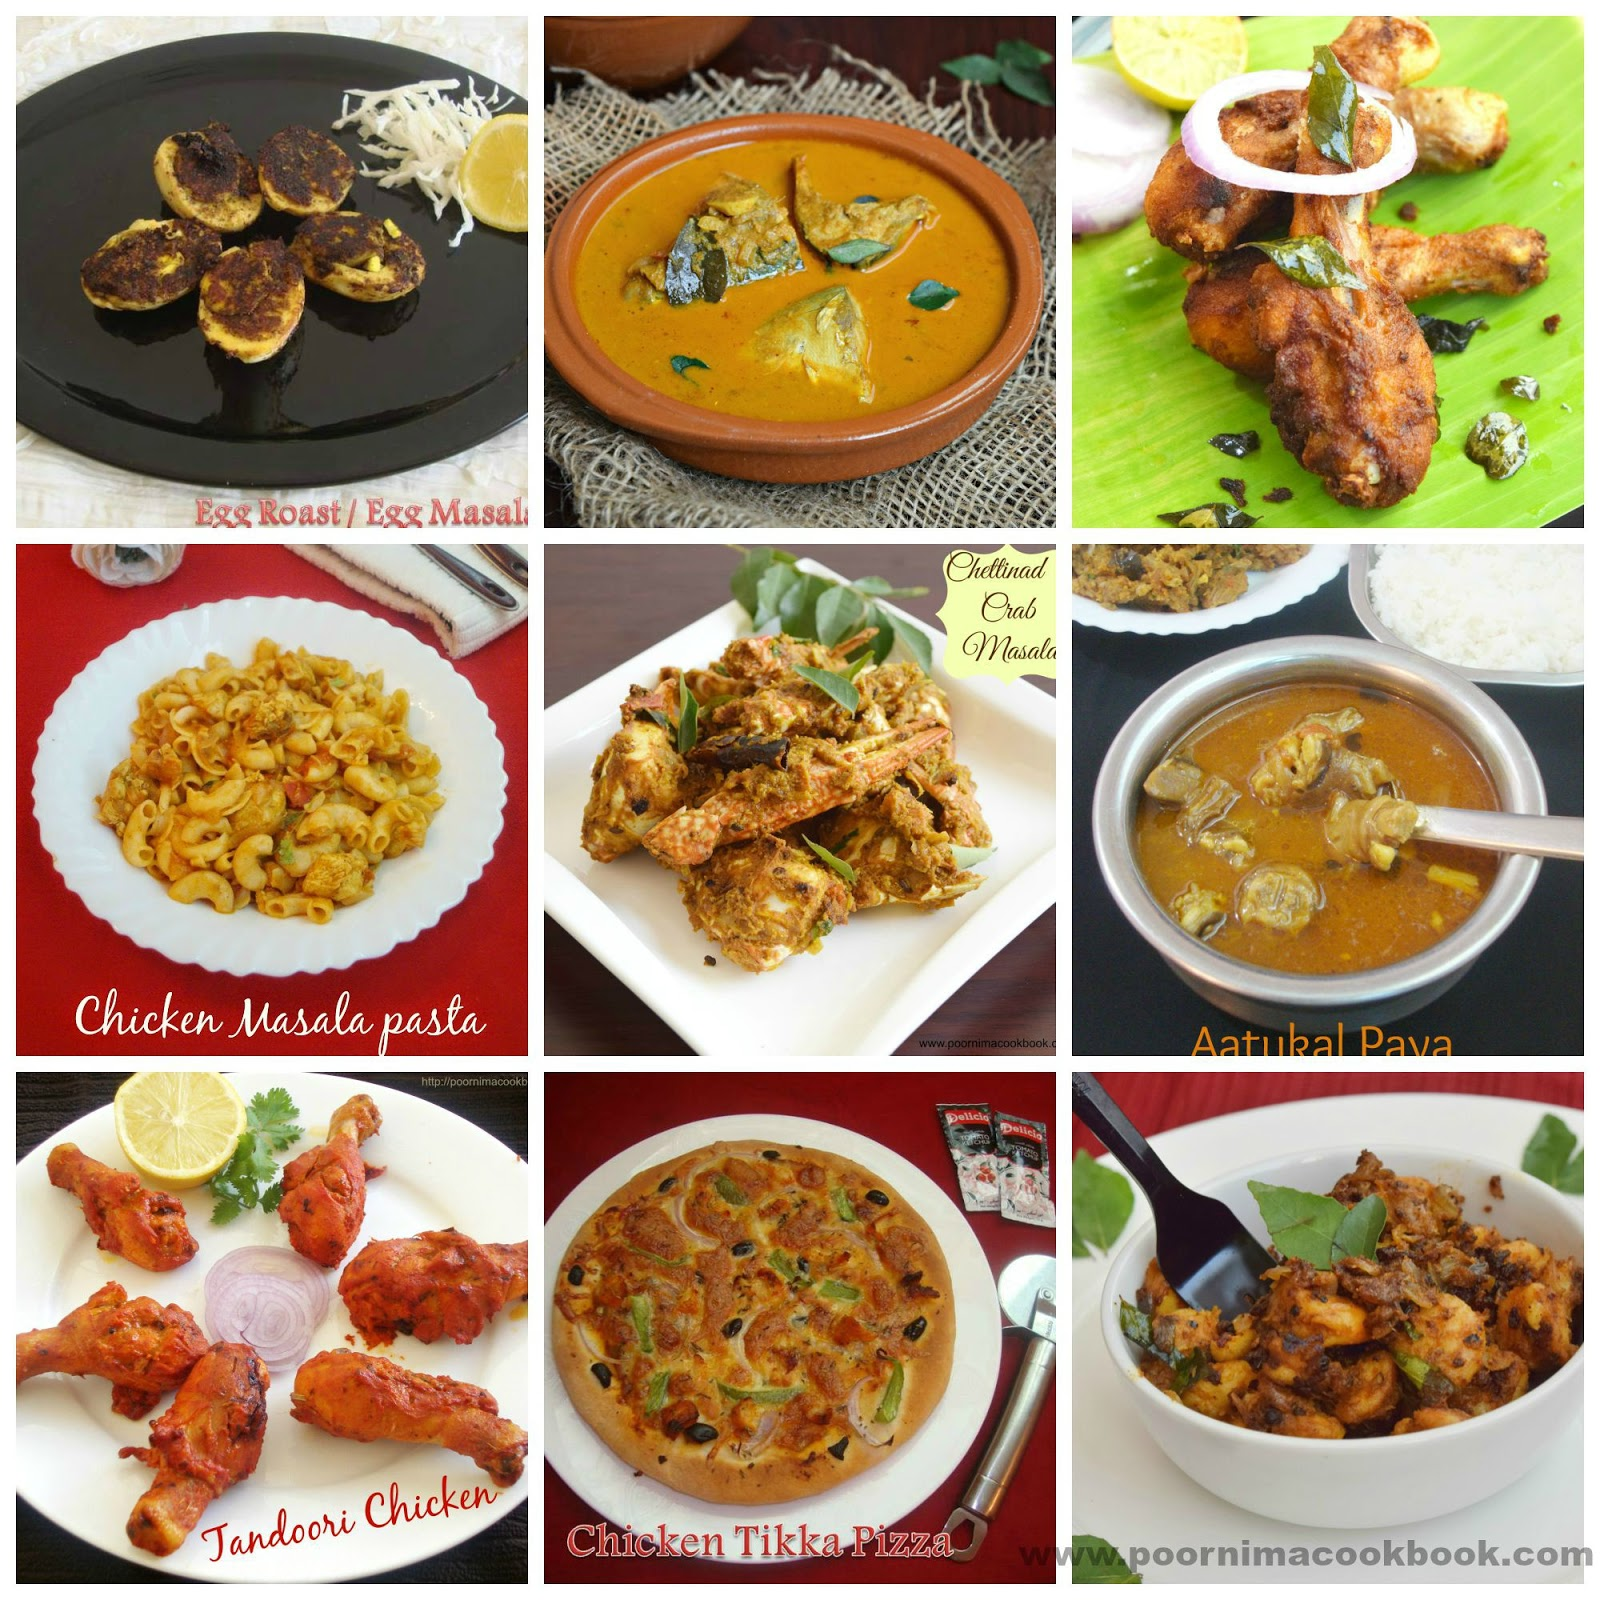 Poornimas cook book non veg delicacies non veg recipes mouthwatering non veg recipes includes egg chicken mutton as well as organ meat and sea food delicacies i have covered south indian north indian forumfinder Image collections